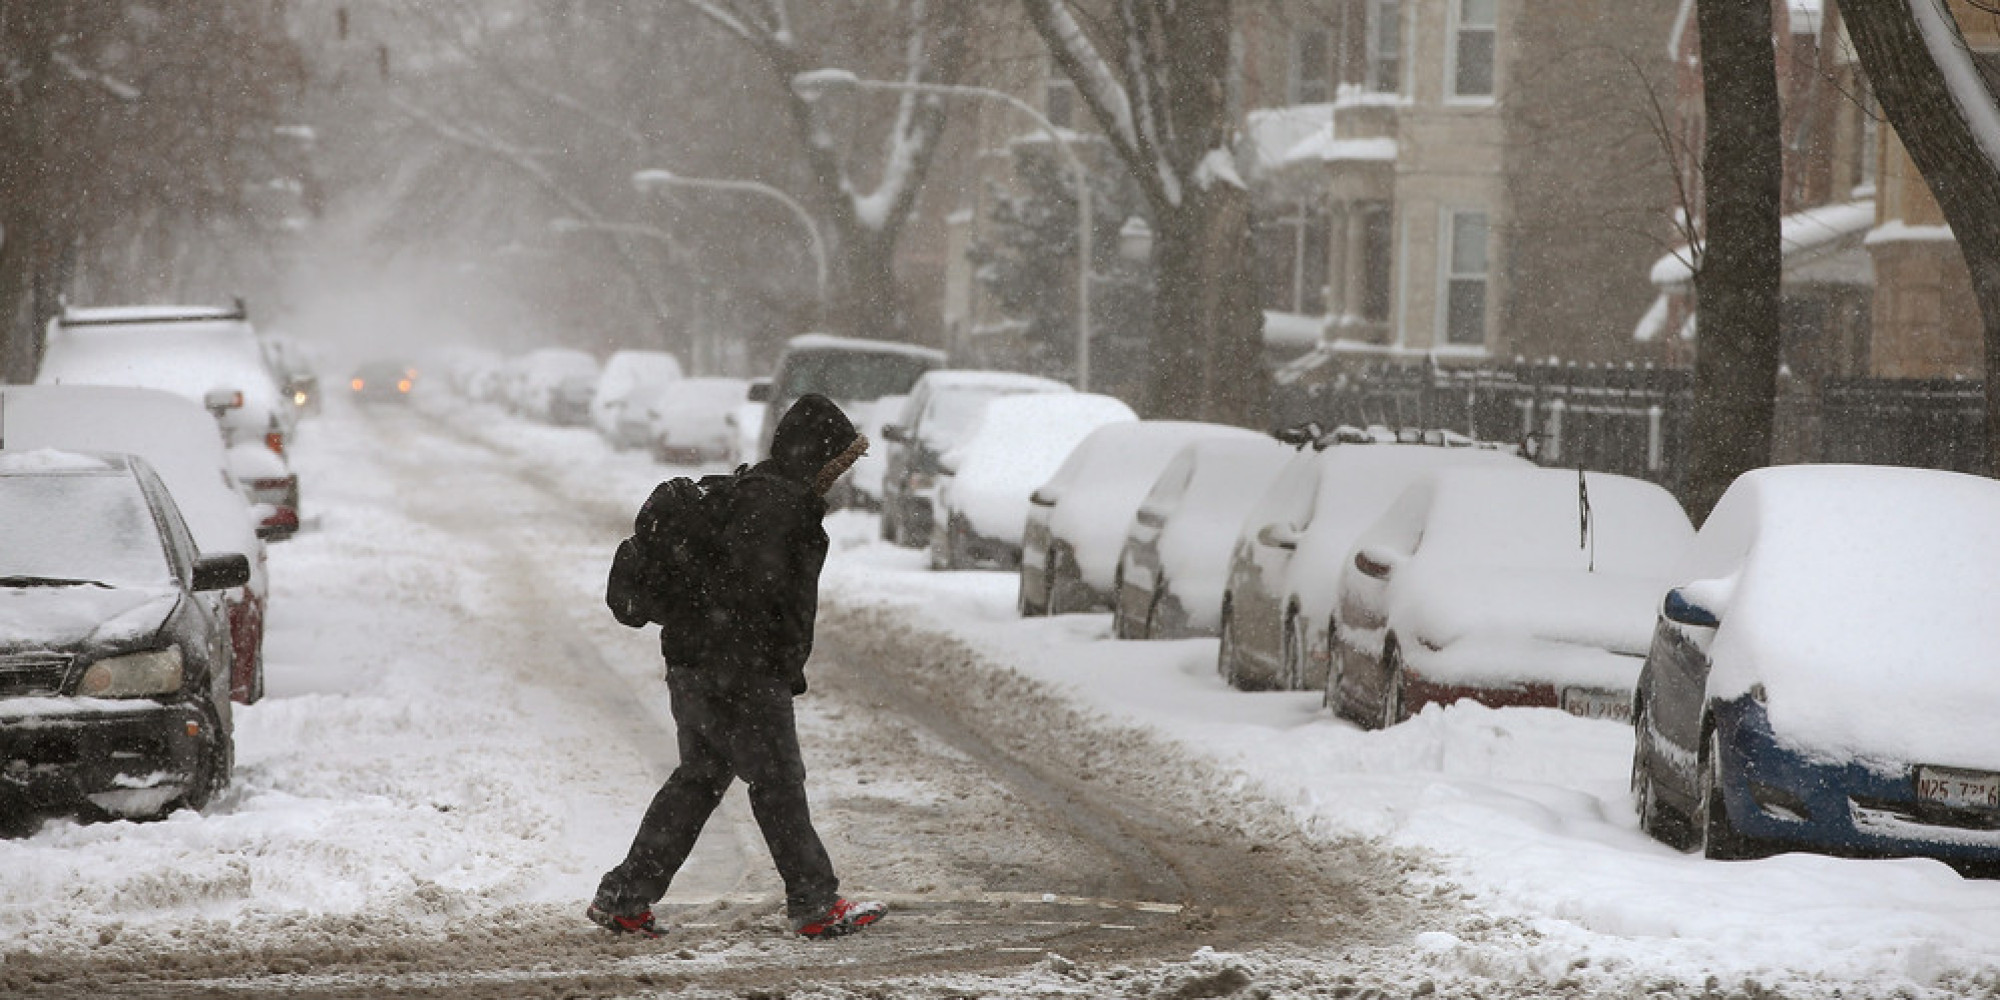 chicago winter storm warning issued ahead of dangerously